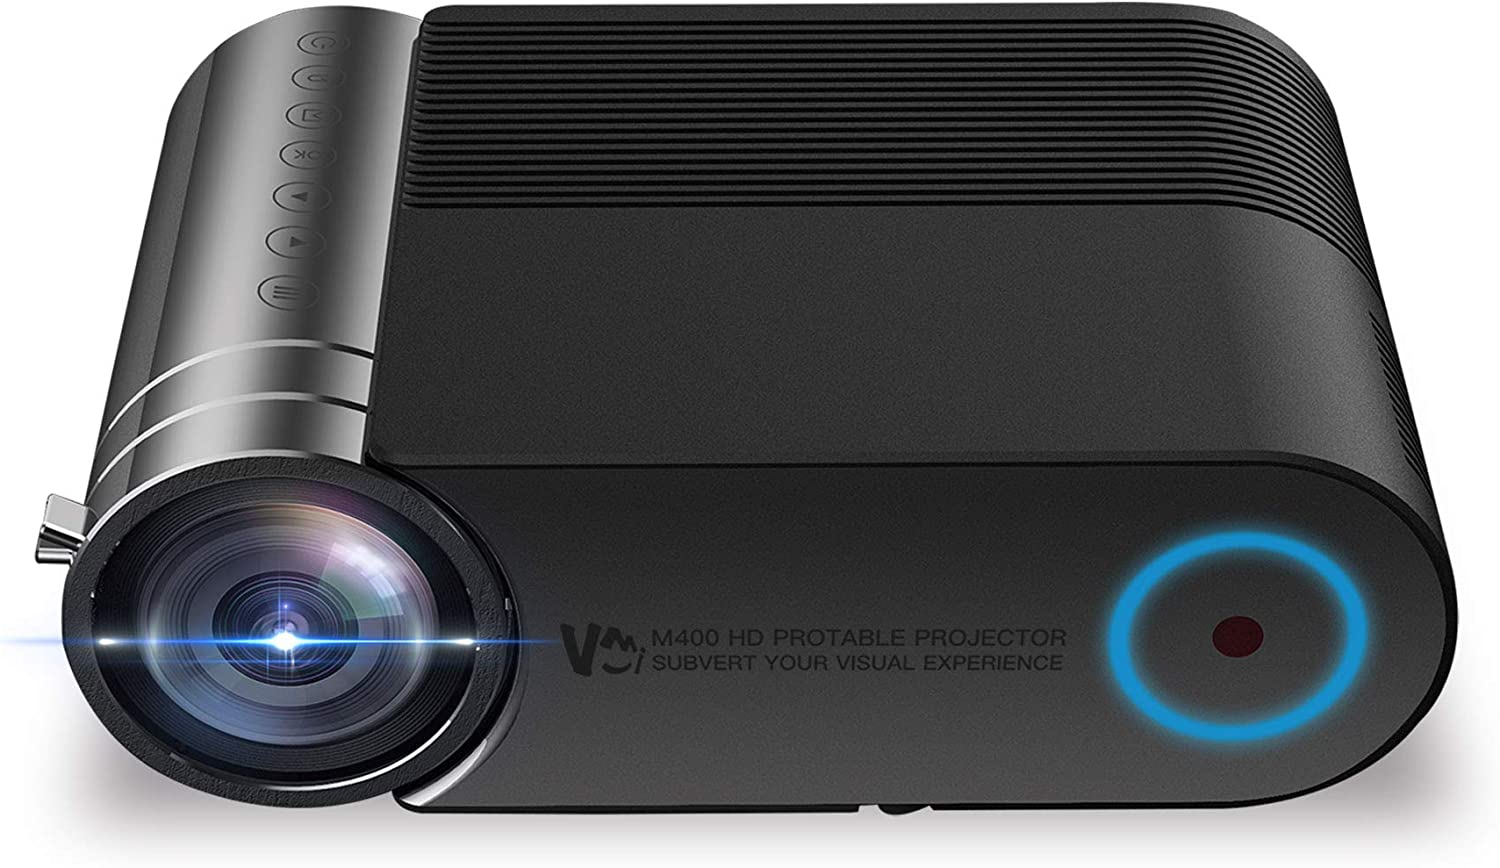 VMI M400 Portable Video Projector; 720P Native/ Full HD 1080P Support; 150ANSI/ 3800Lux; Home Theater/ Outdoor Movie/Meeting Proposal, Compatible with Fire TV Stick, PS4, Multiple Video Source Inputs